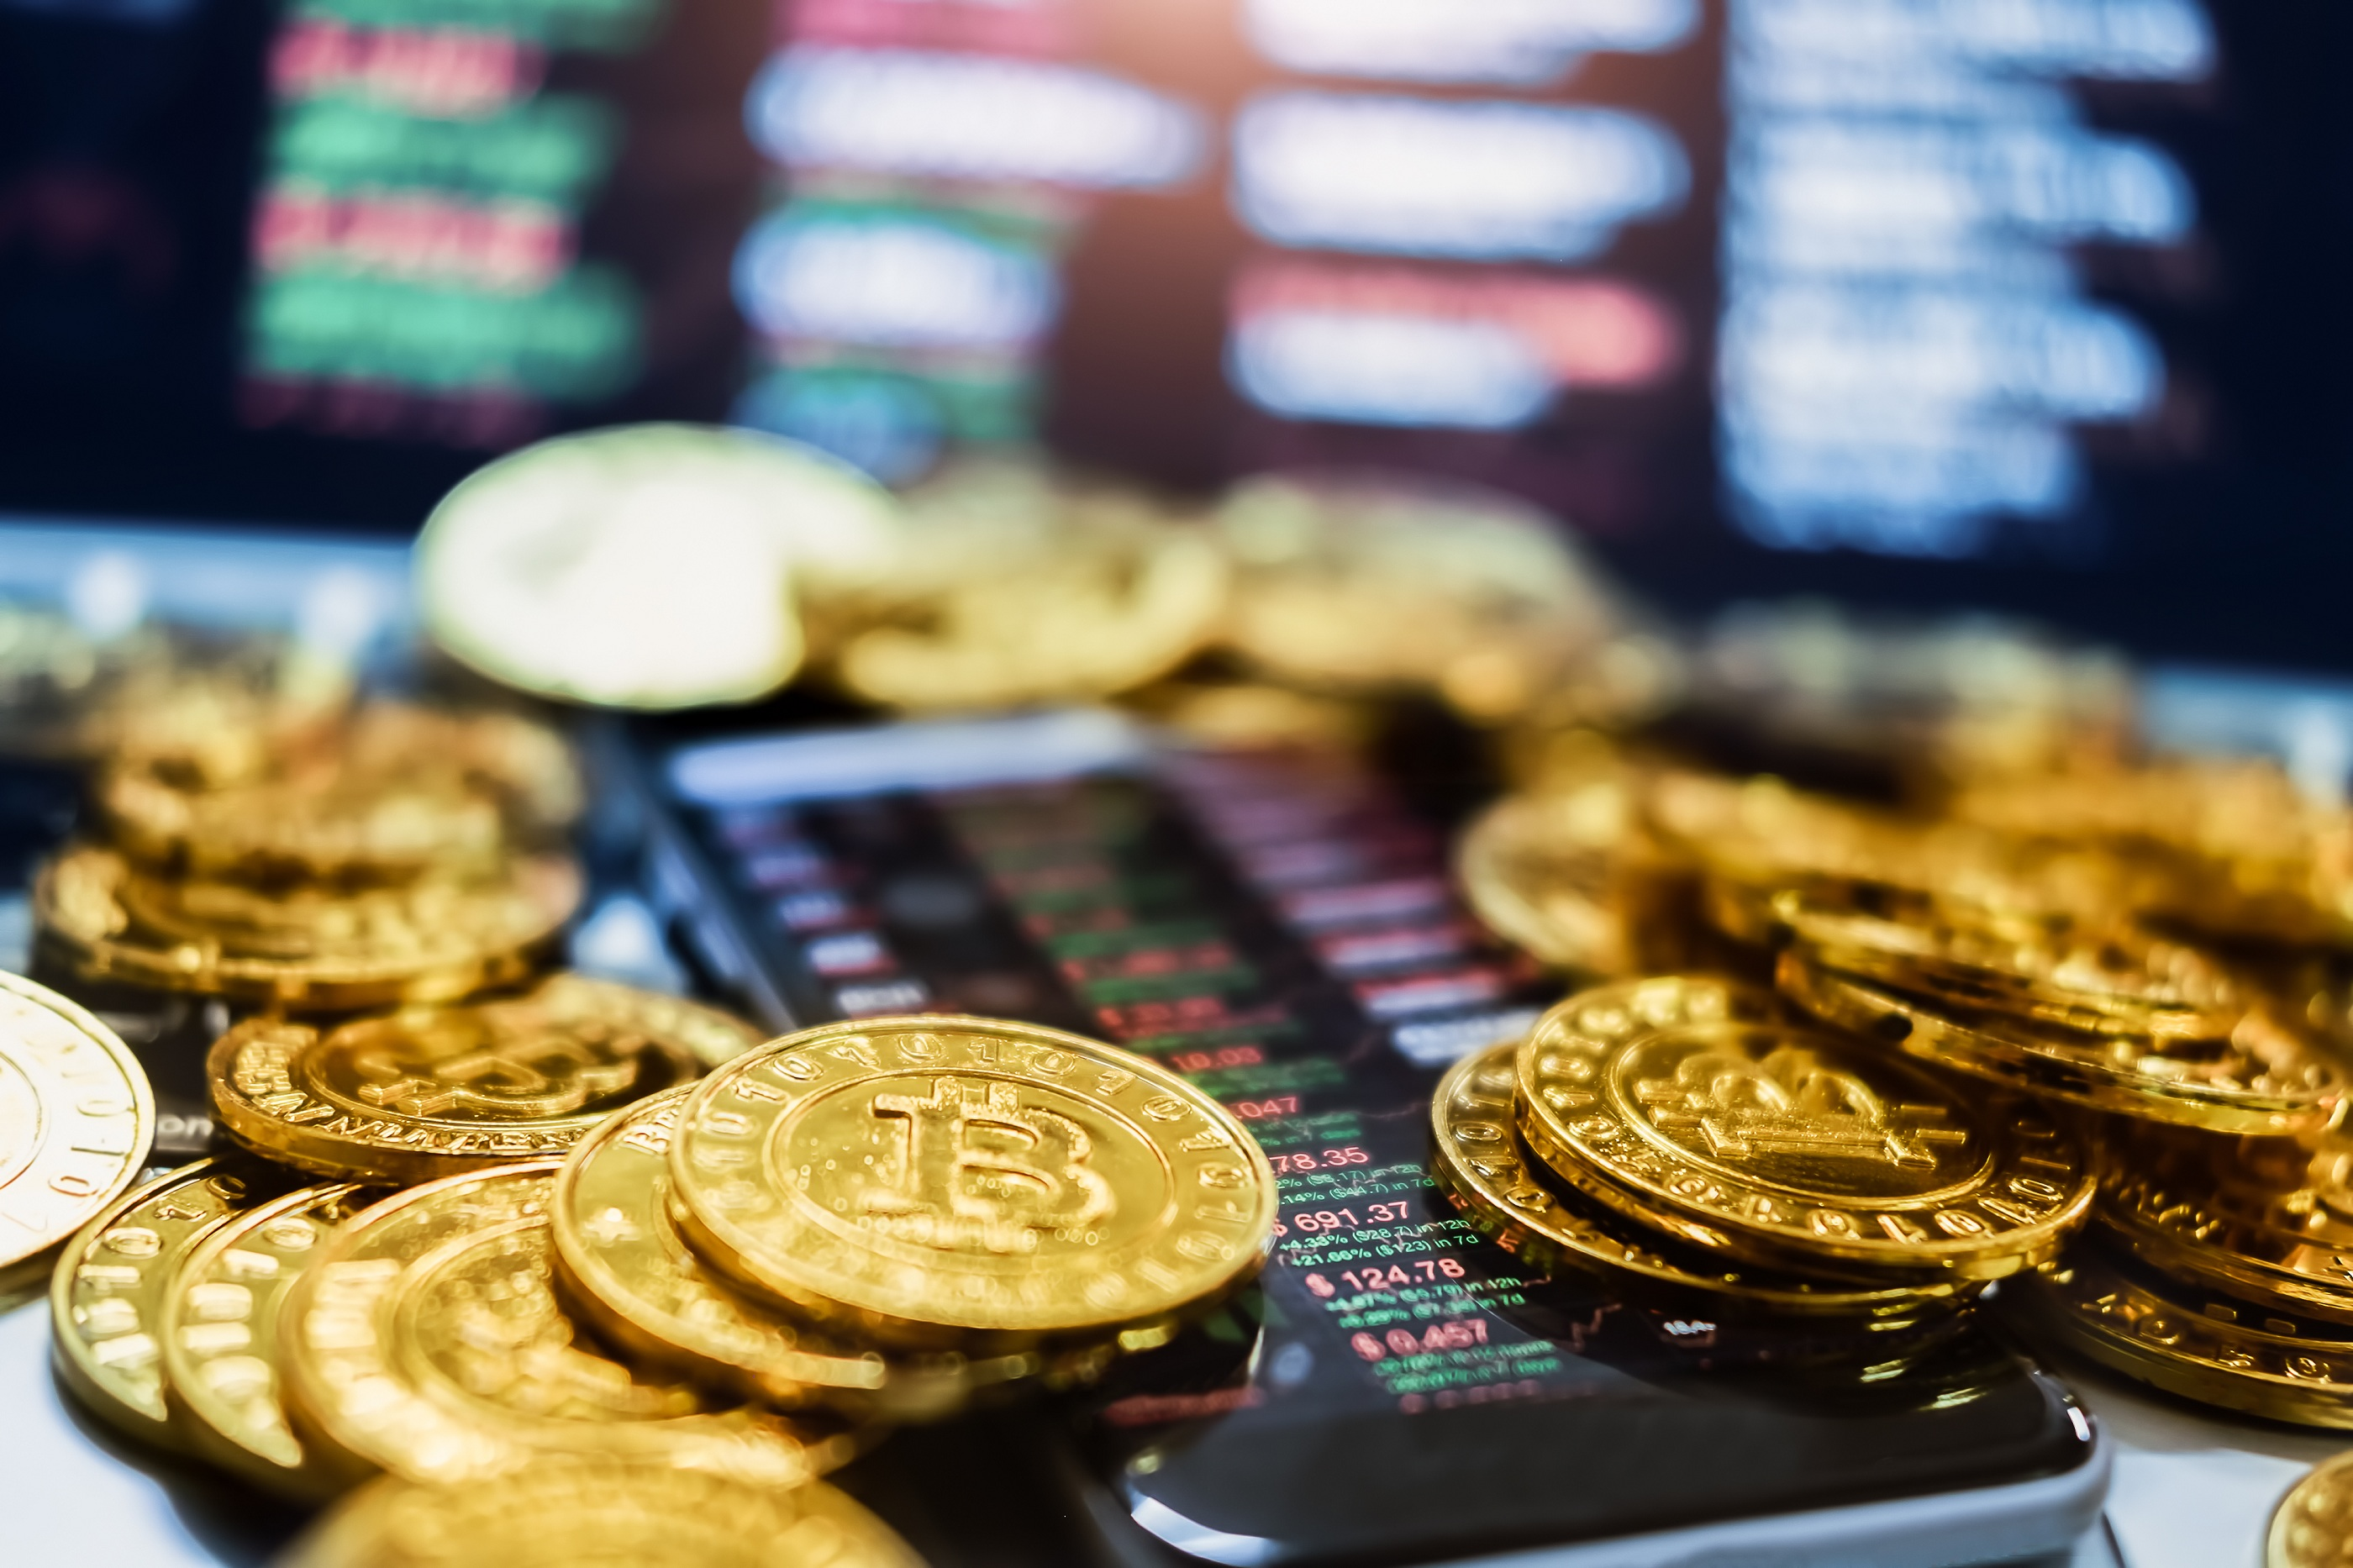 What's the significance of Bitcoin's $1 trillion valuation? - Marketplace